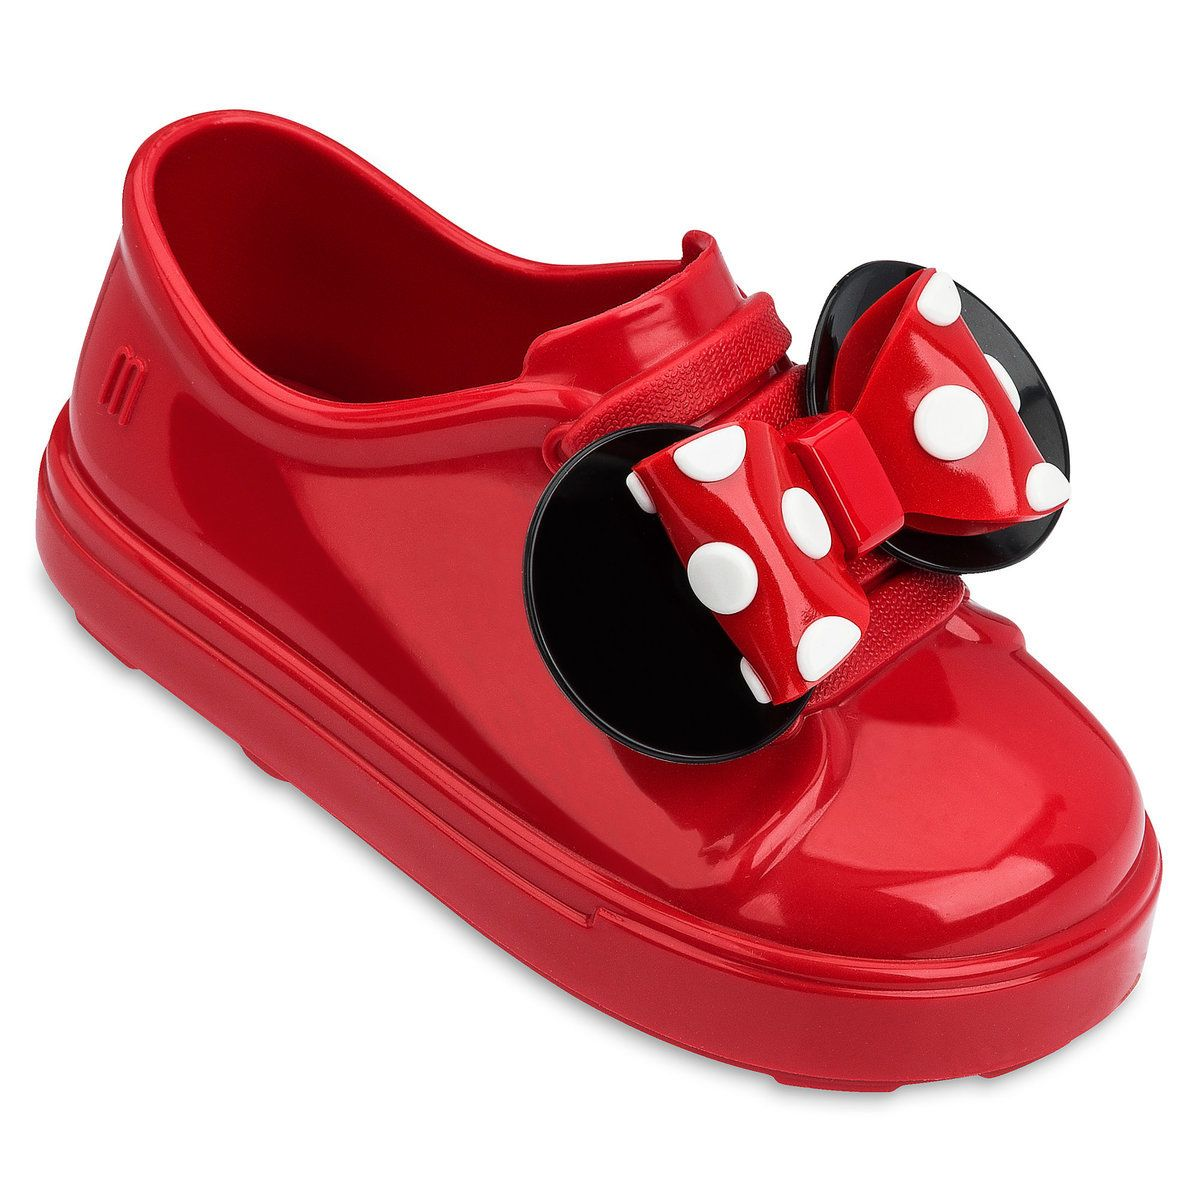 fddd6cc1392a5 Product Image of Minnie Mouse Sneakers for Toddlers by Melissa   1